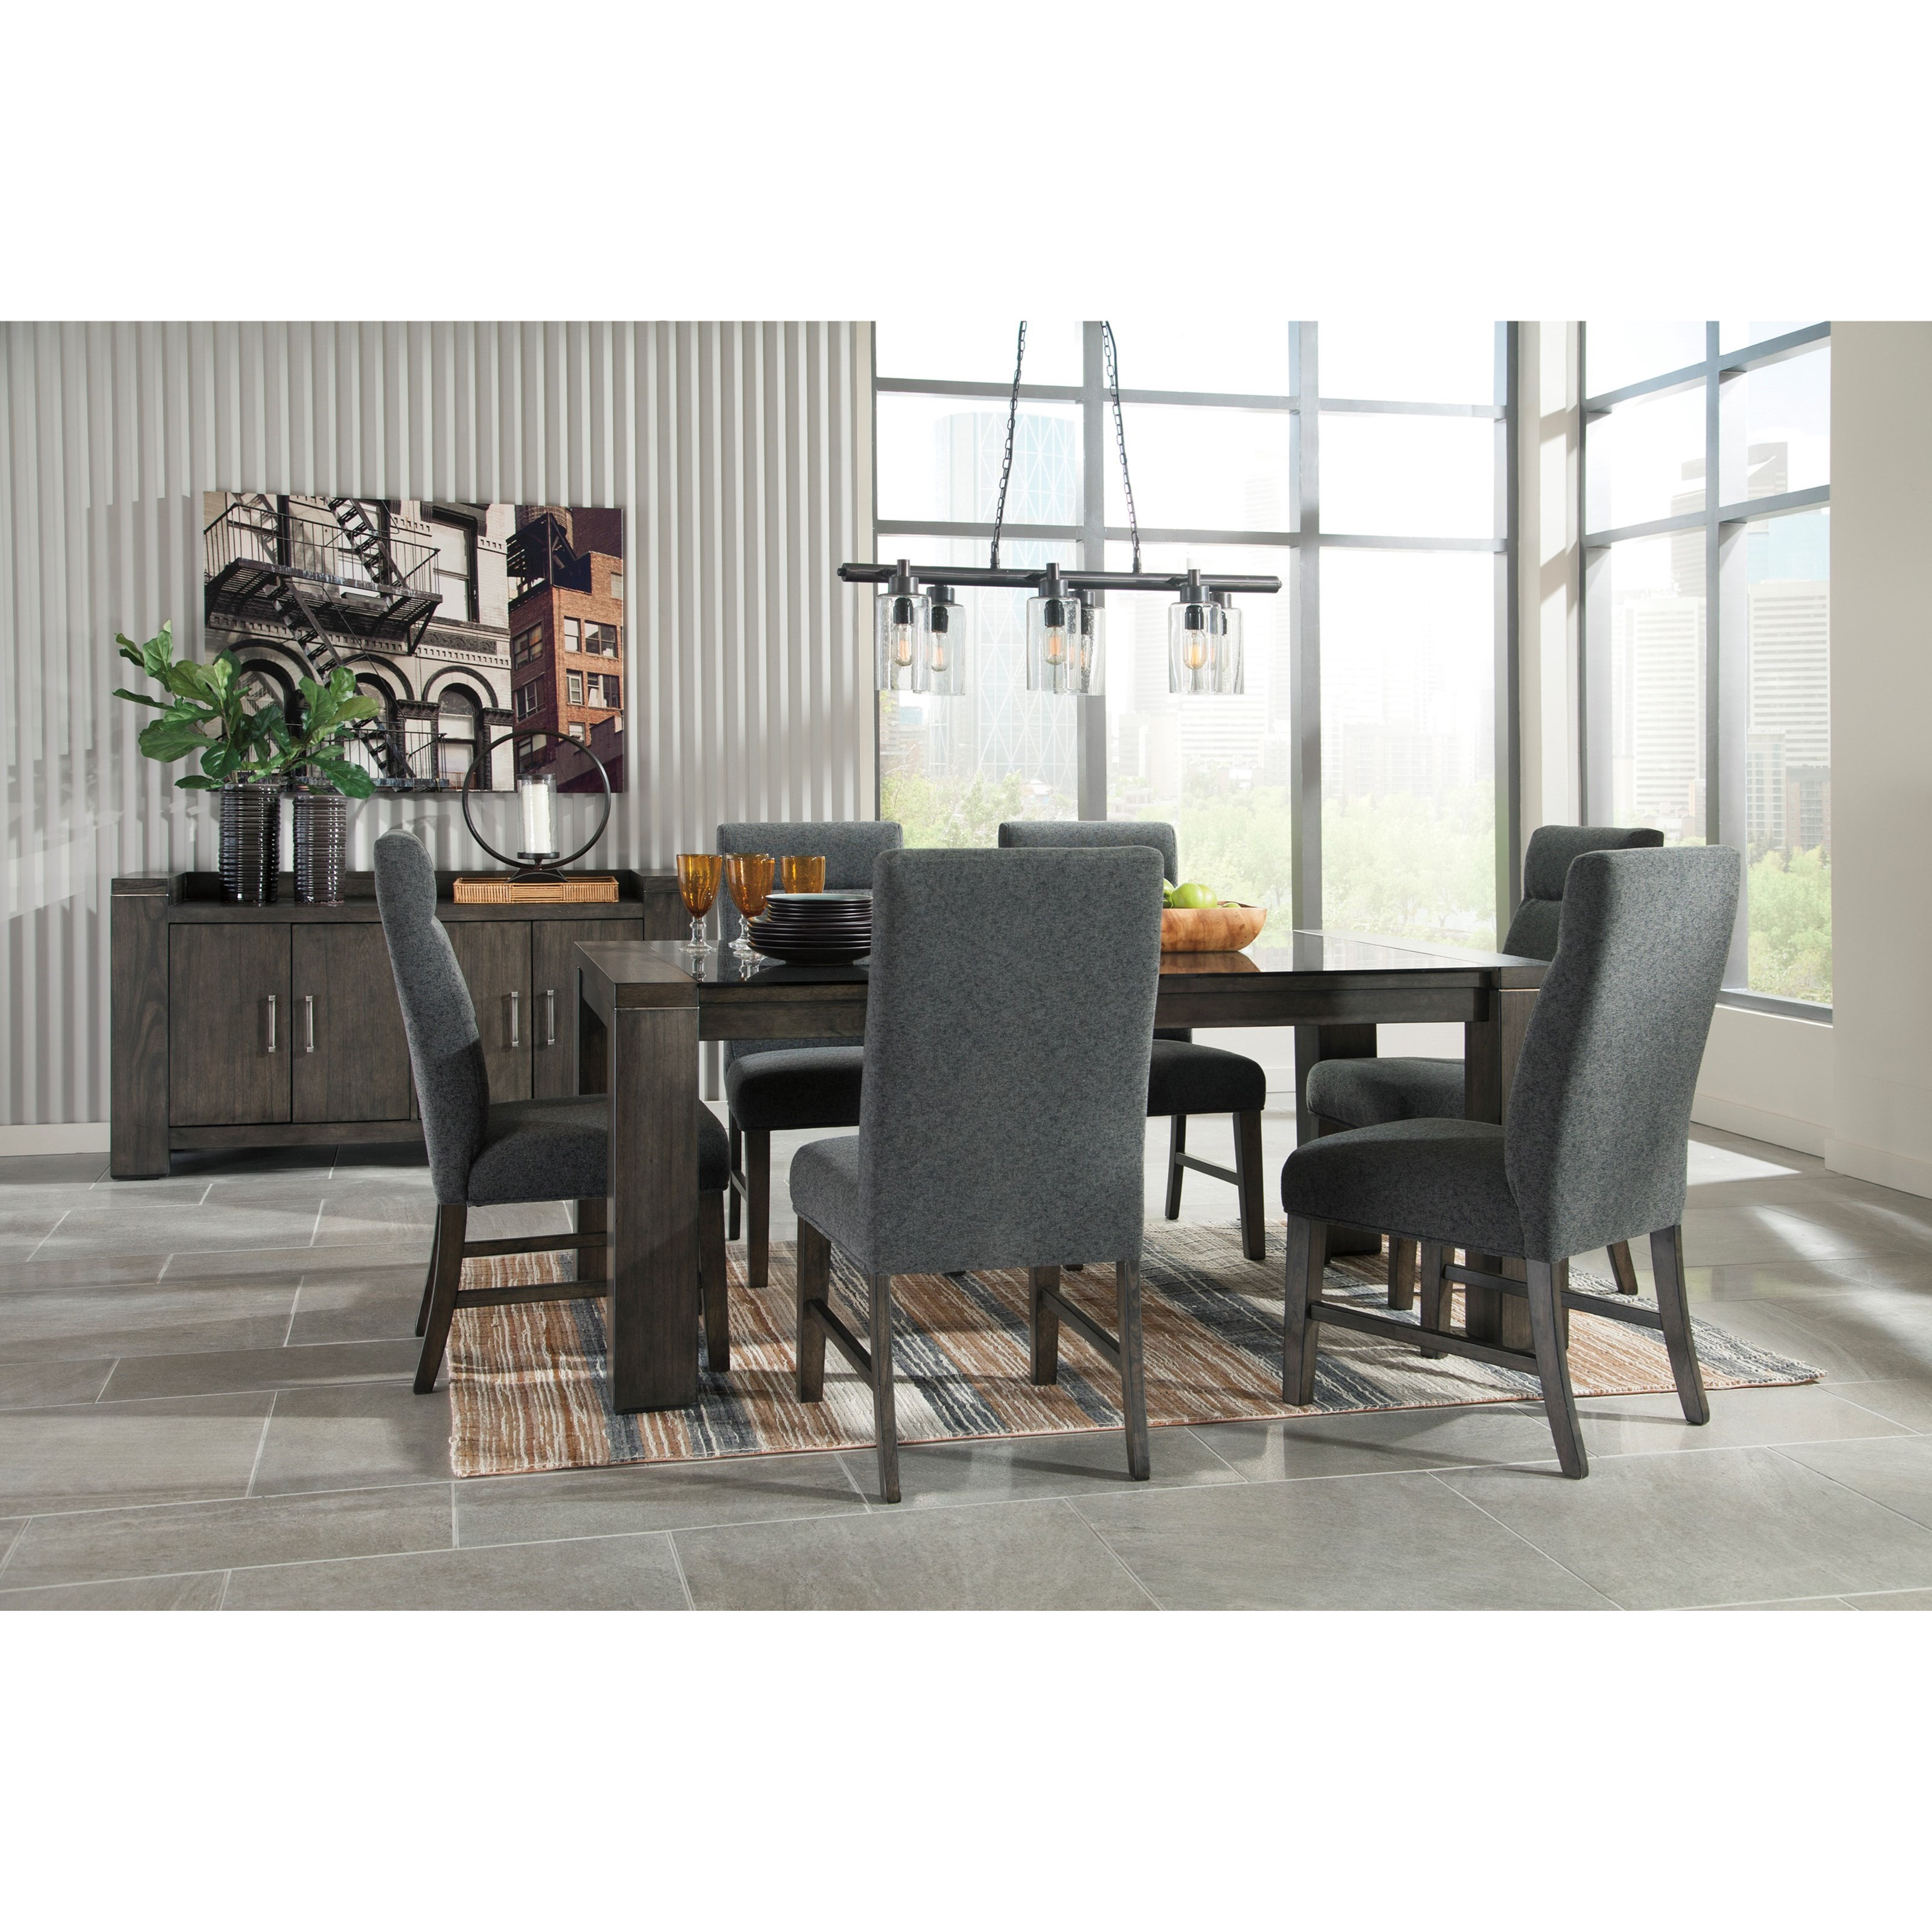 Signature Design By Ashley Chansey Casual Dining Room Group Value City Furniture Casual